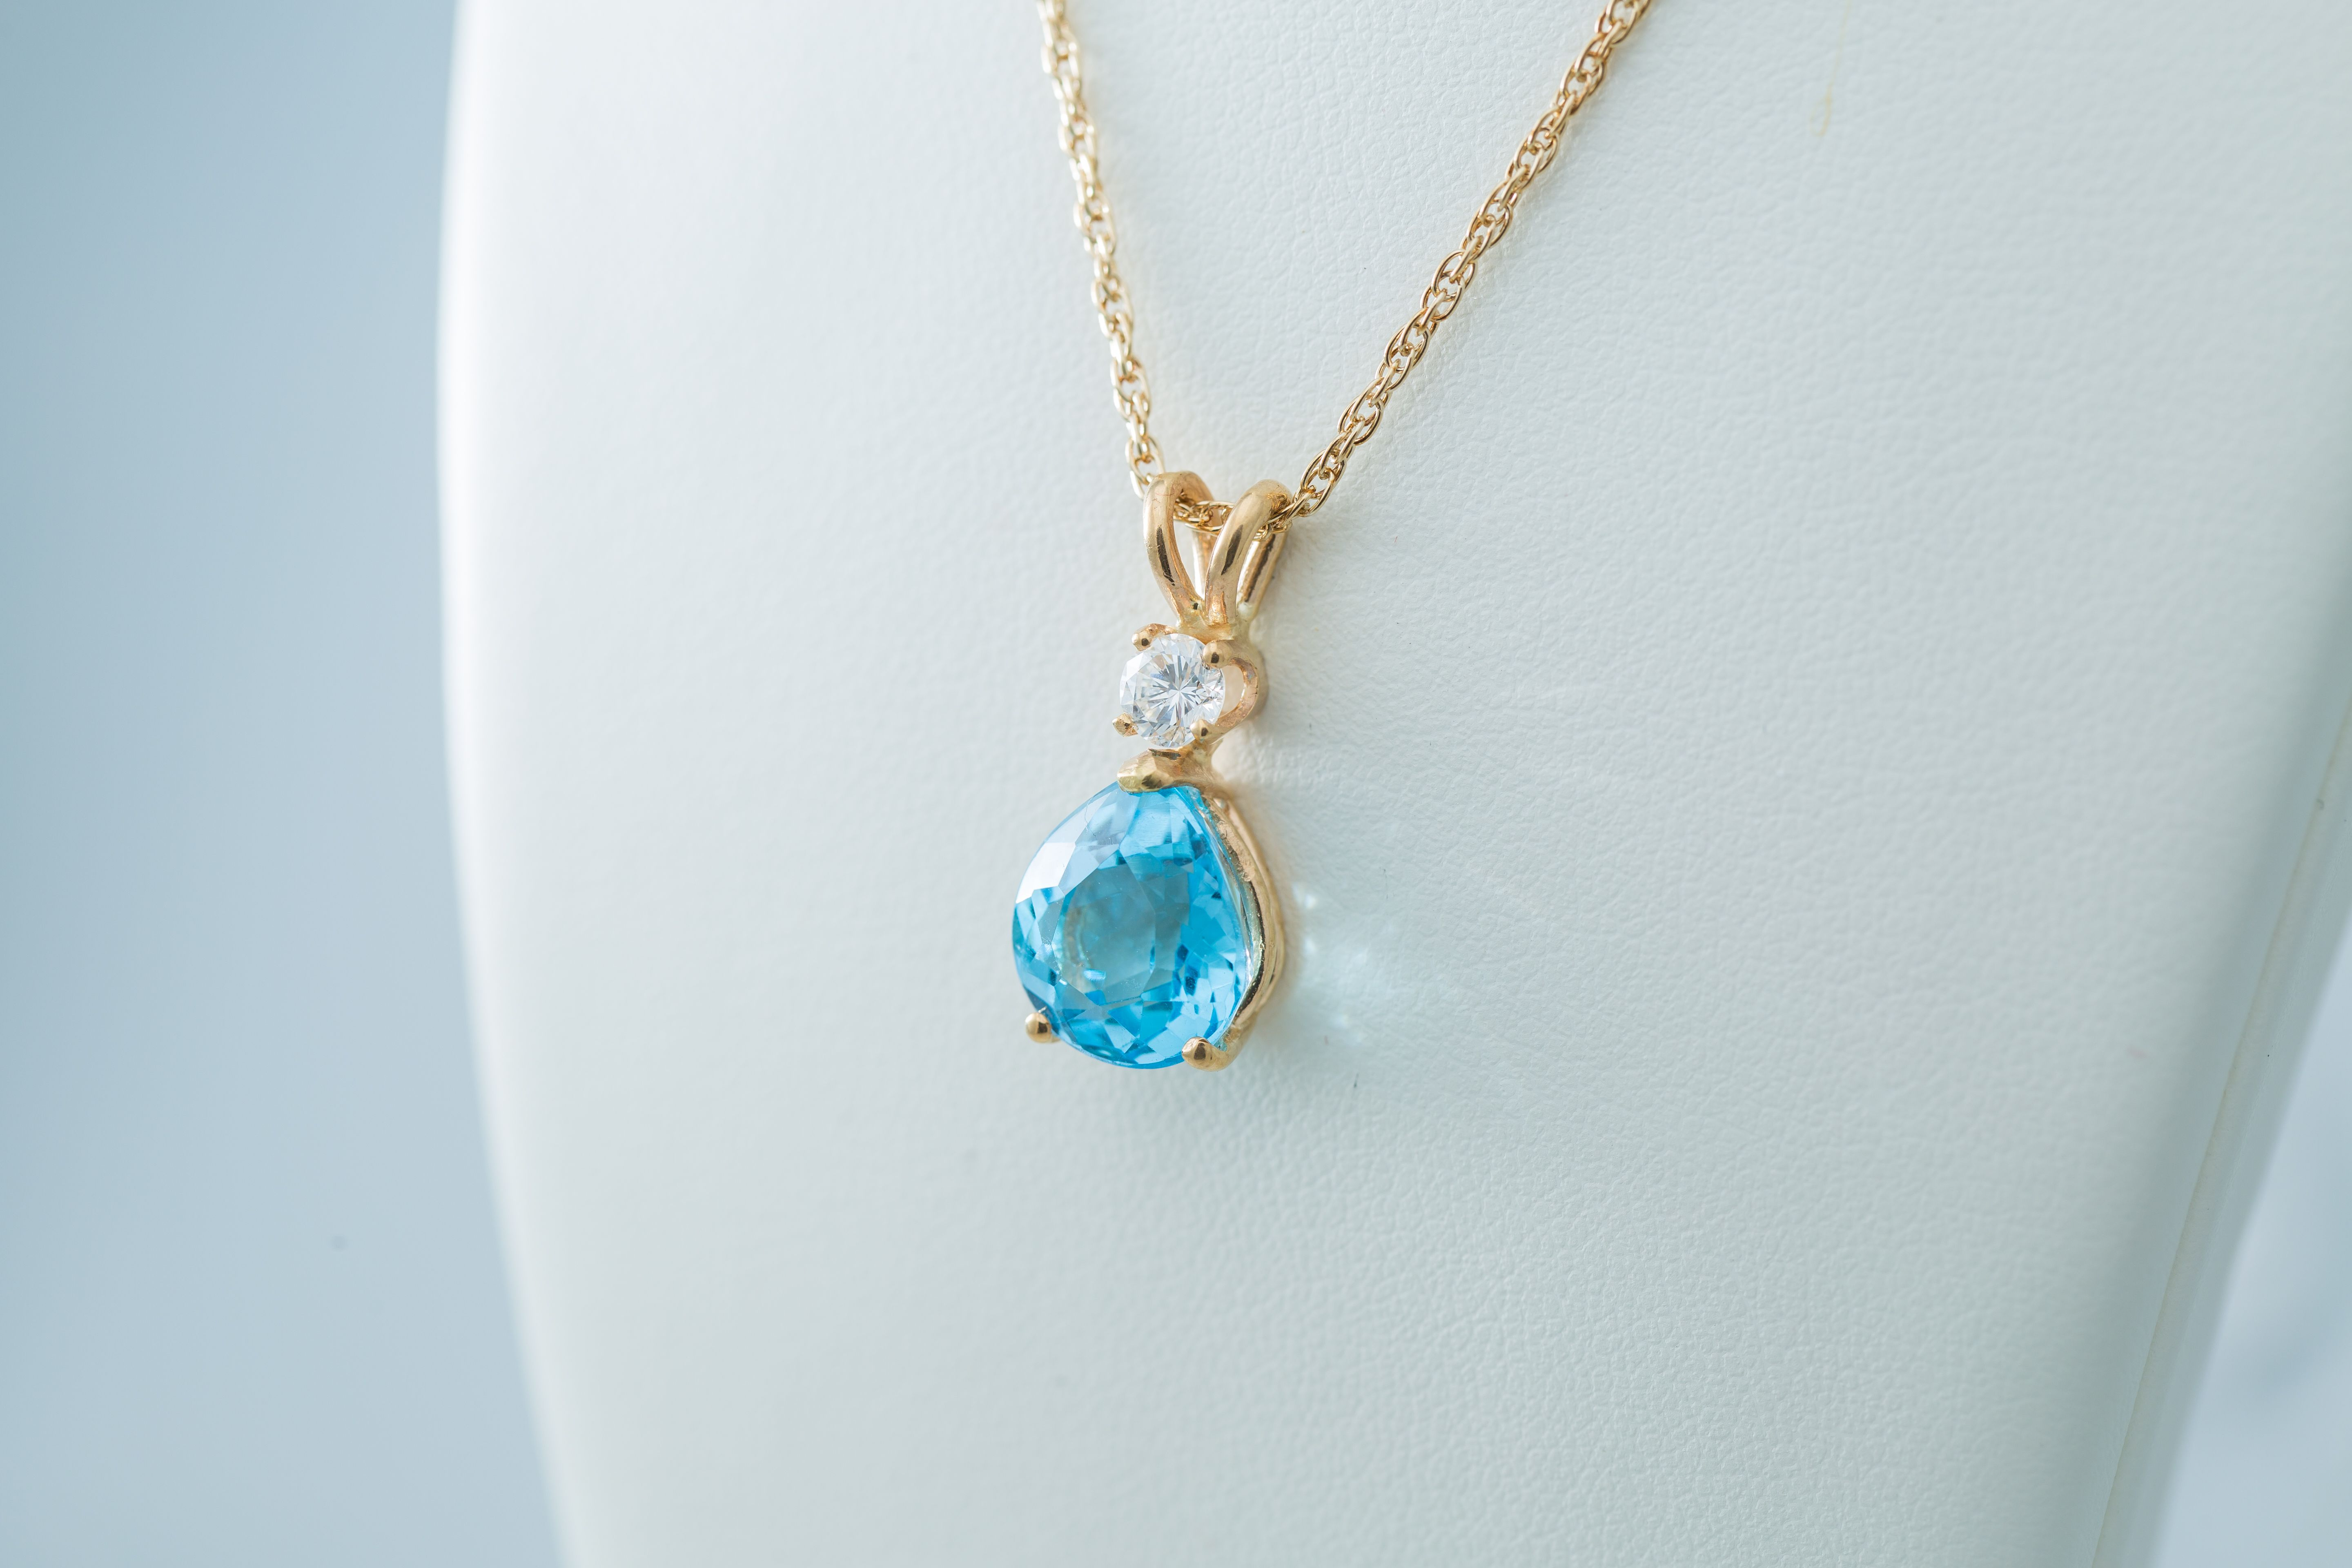 This stunning 4.19ct Blue Topaz in 14K Gold with .24ctw Diamond necklace would make a great gift for any occasion.  C.M. Buxton Jeweler & Rare Coins.  $750